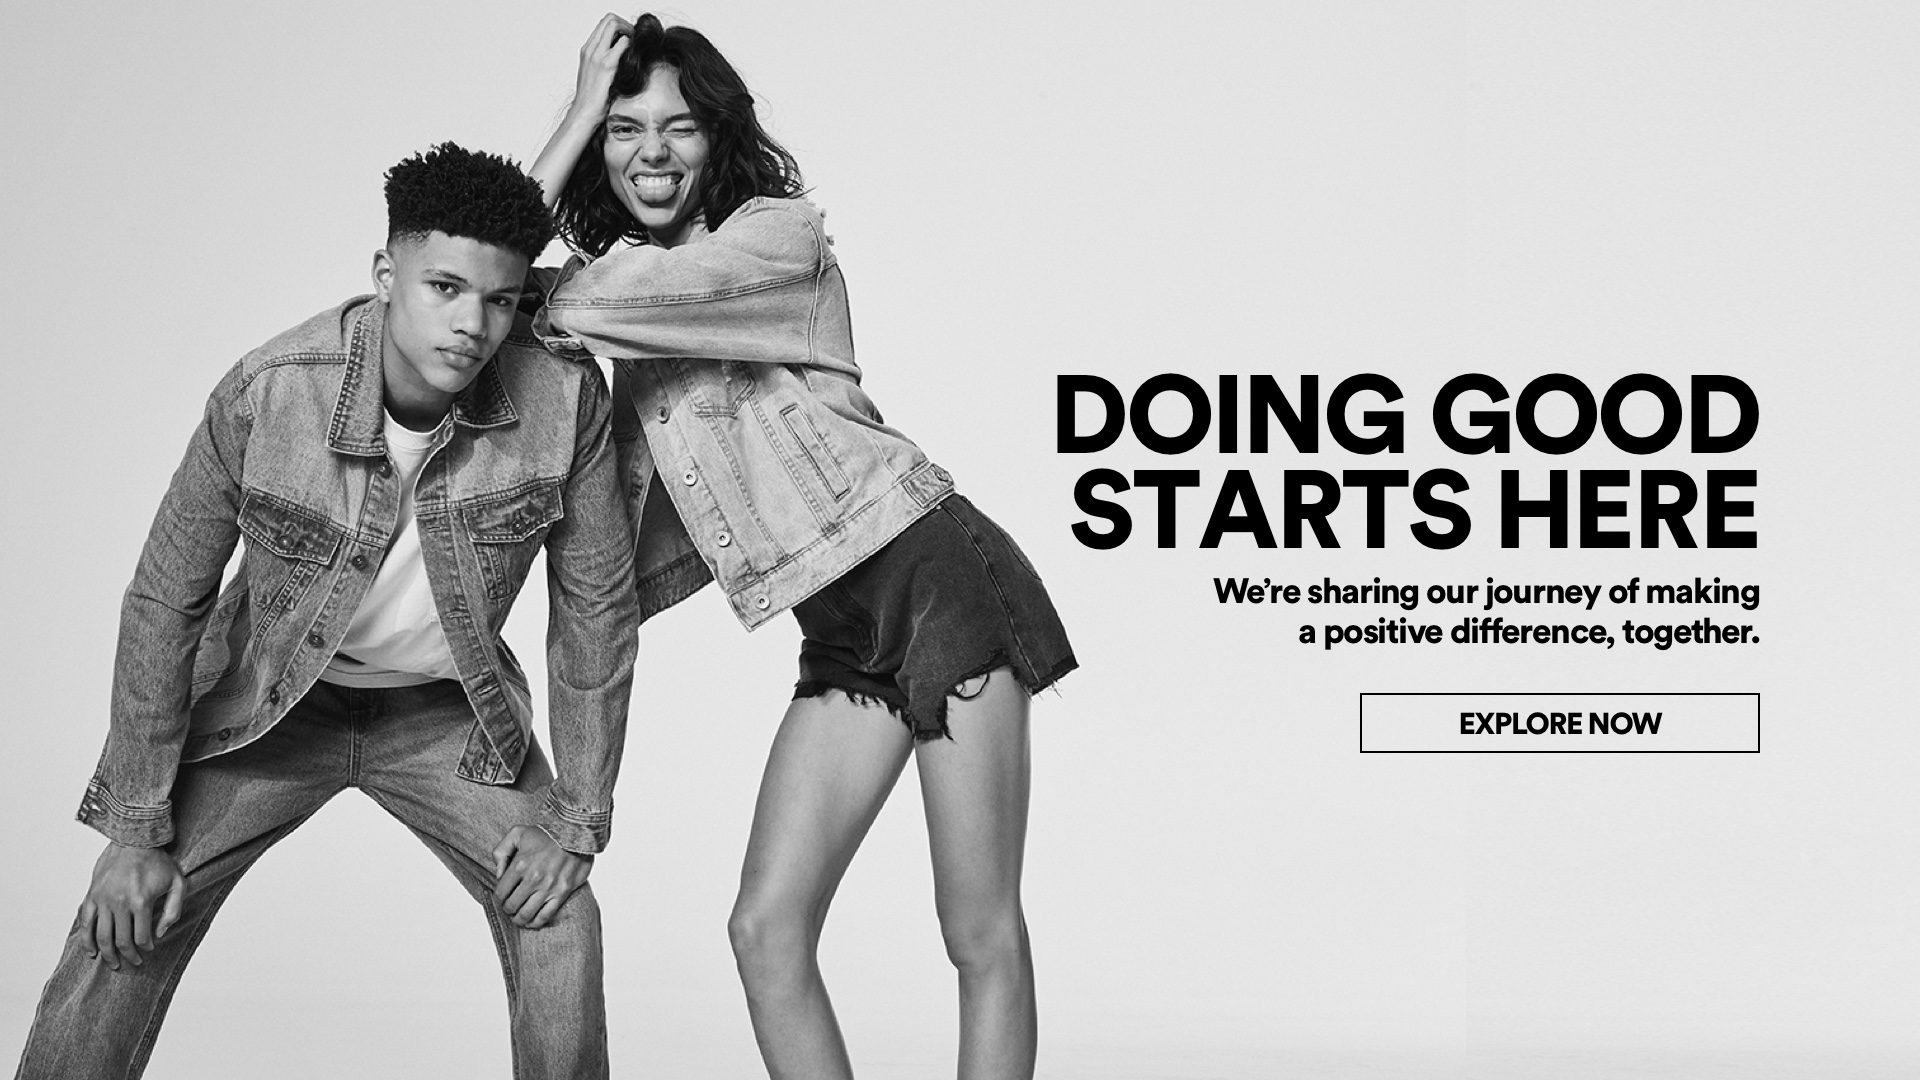 Doing Good starts here. Click for more information.